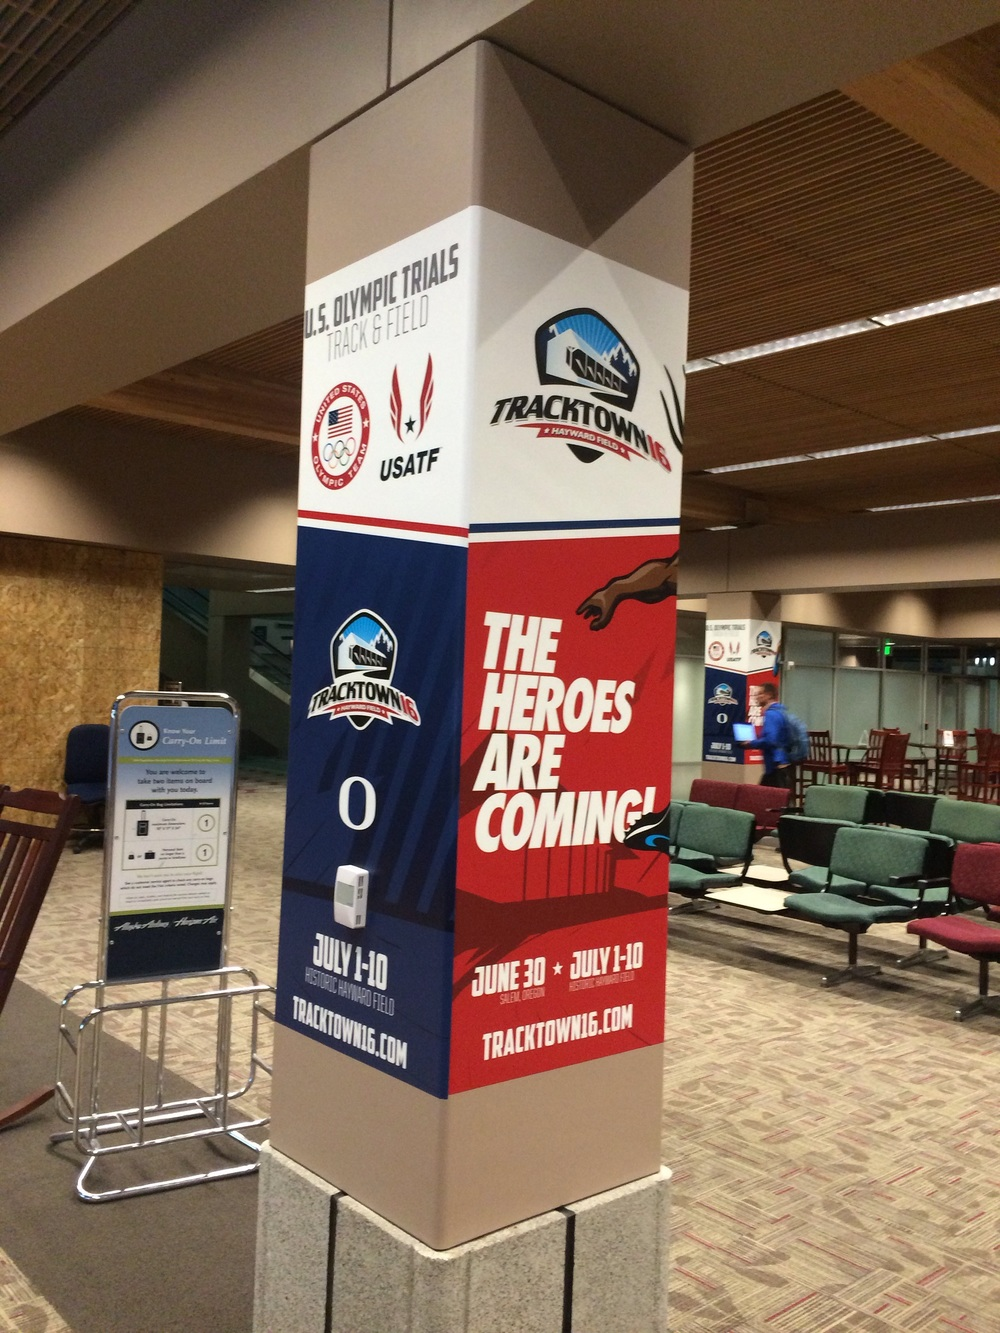 Warm welcome at the Eugene Airport